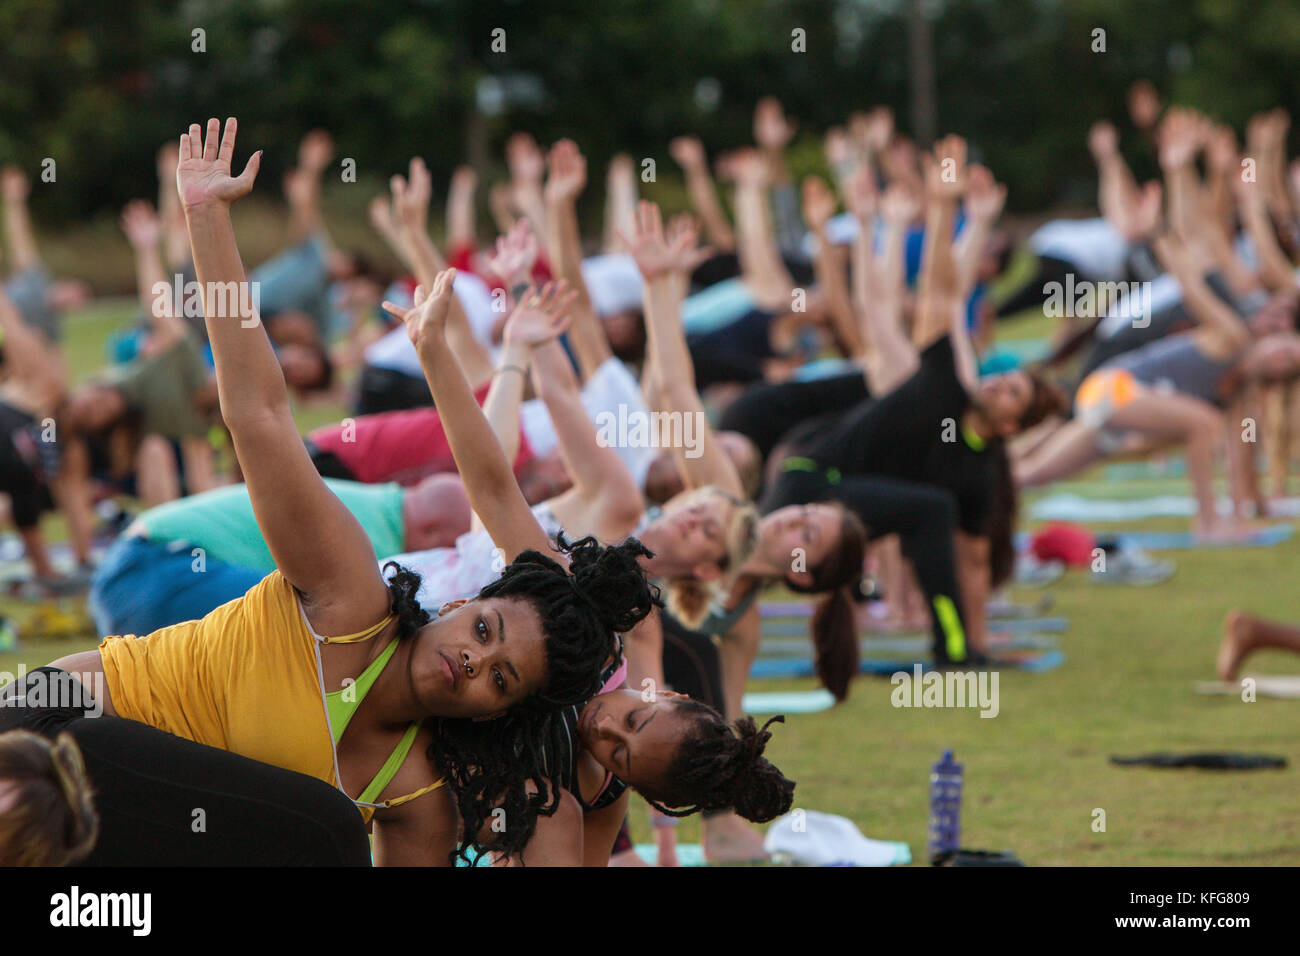 Atlanta, GA, USA - July 2, 2017:  Dozens of people do the triangle yoga pose as they take part in a free group yoga - Stock Image